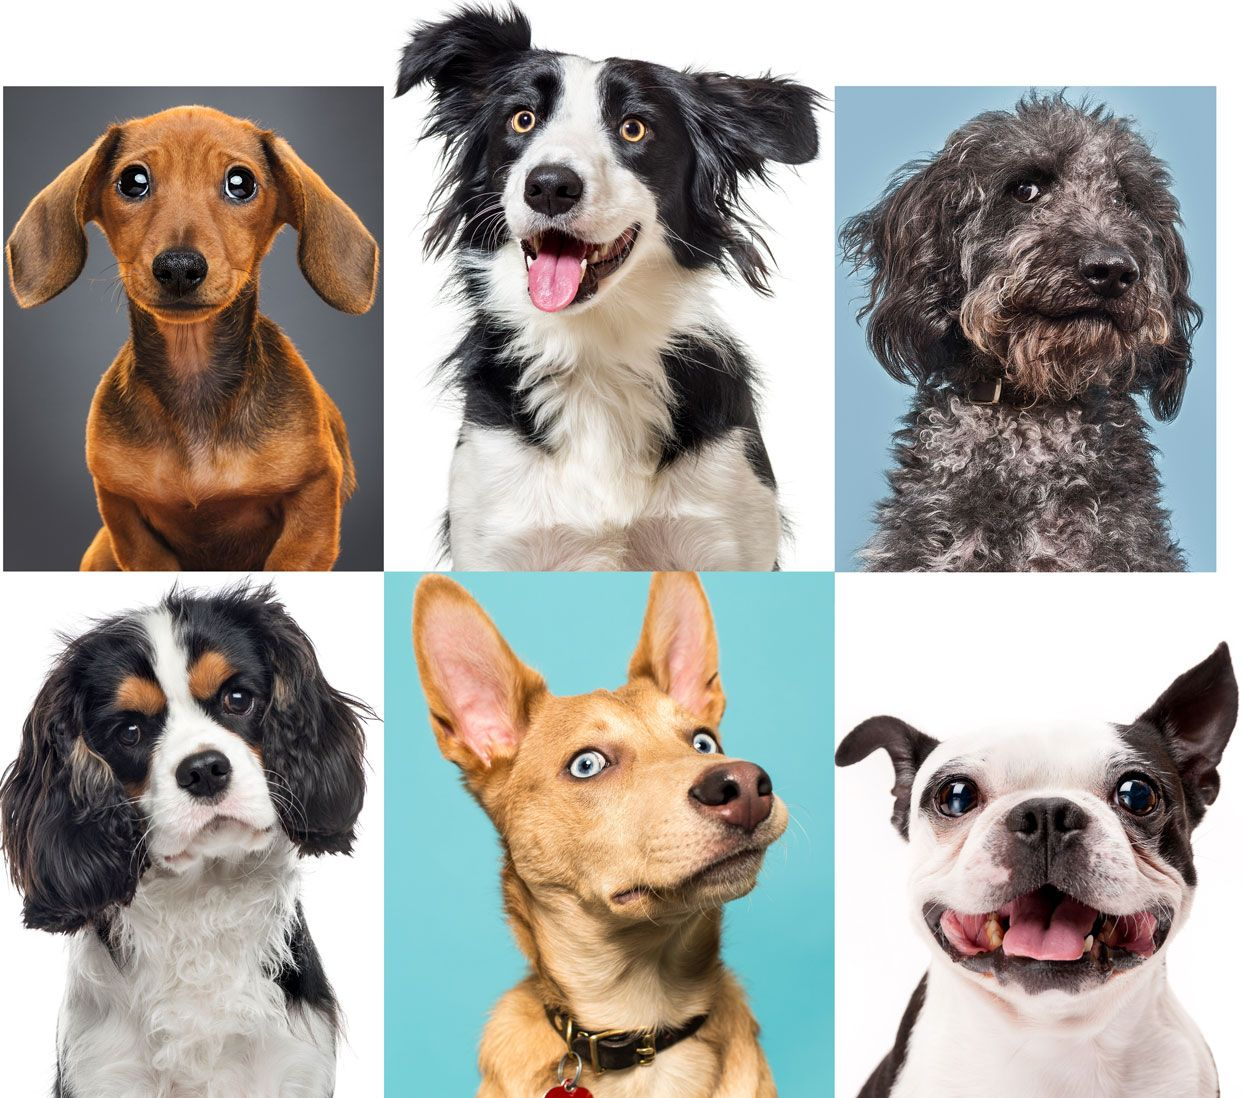 How to Understand Dogs' Emotions?